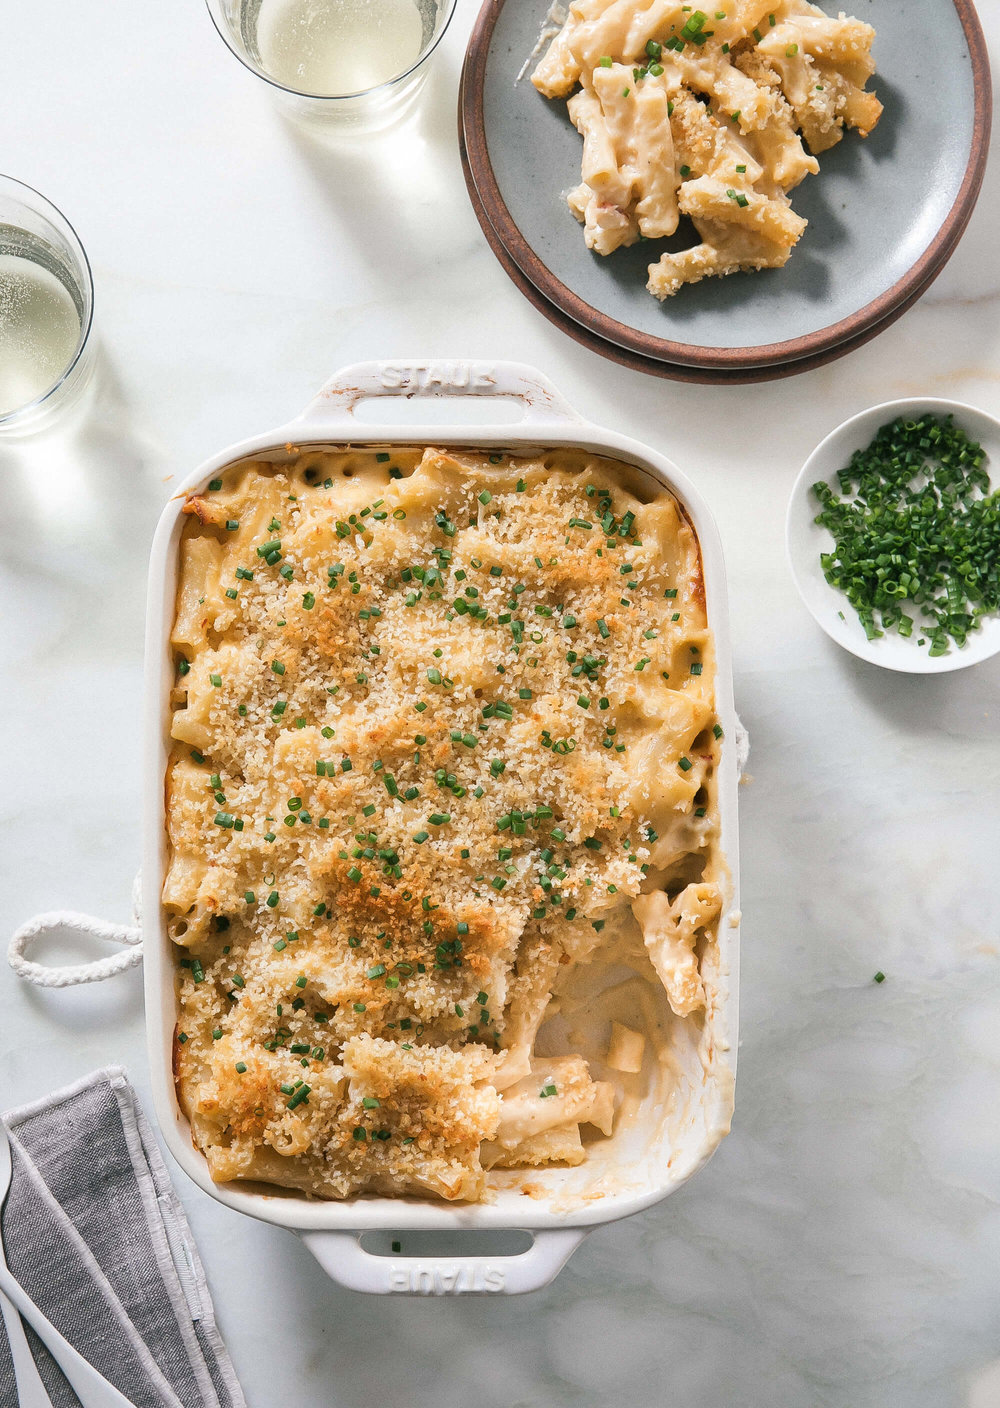 6.Lobster Macaroni and Cheese -